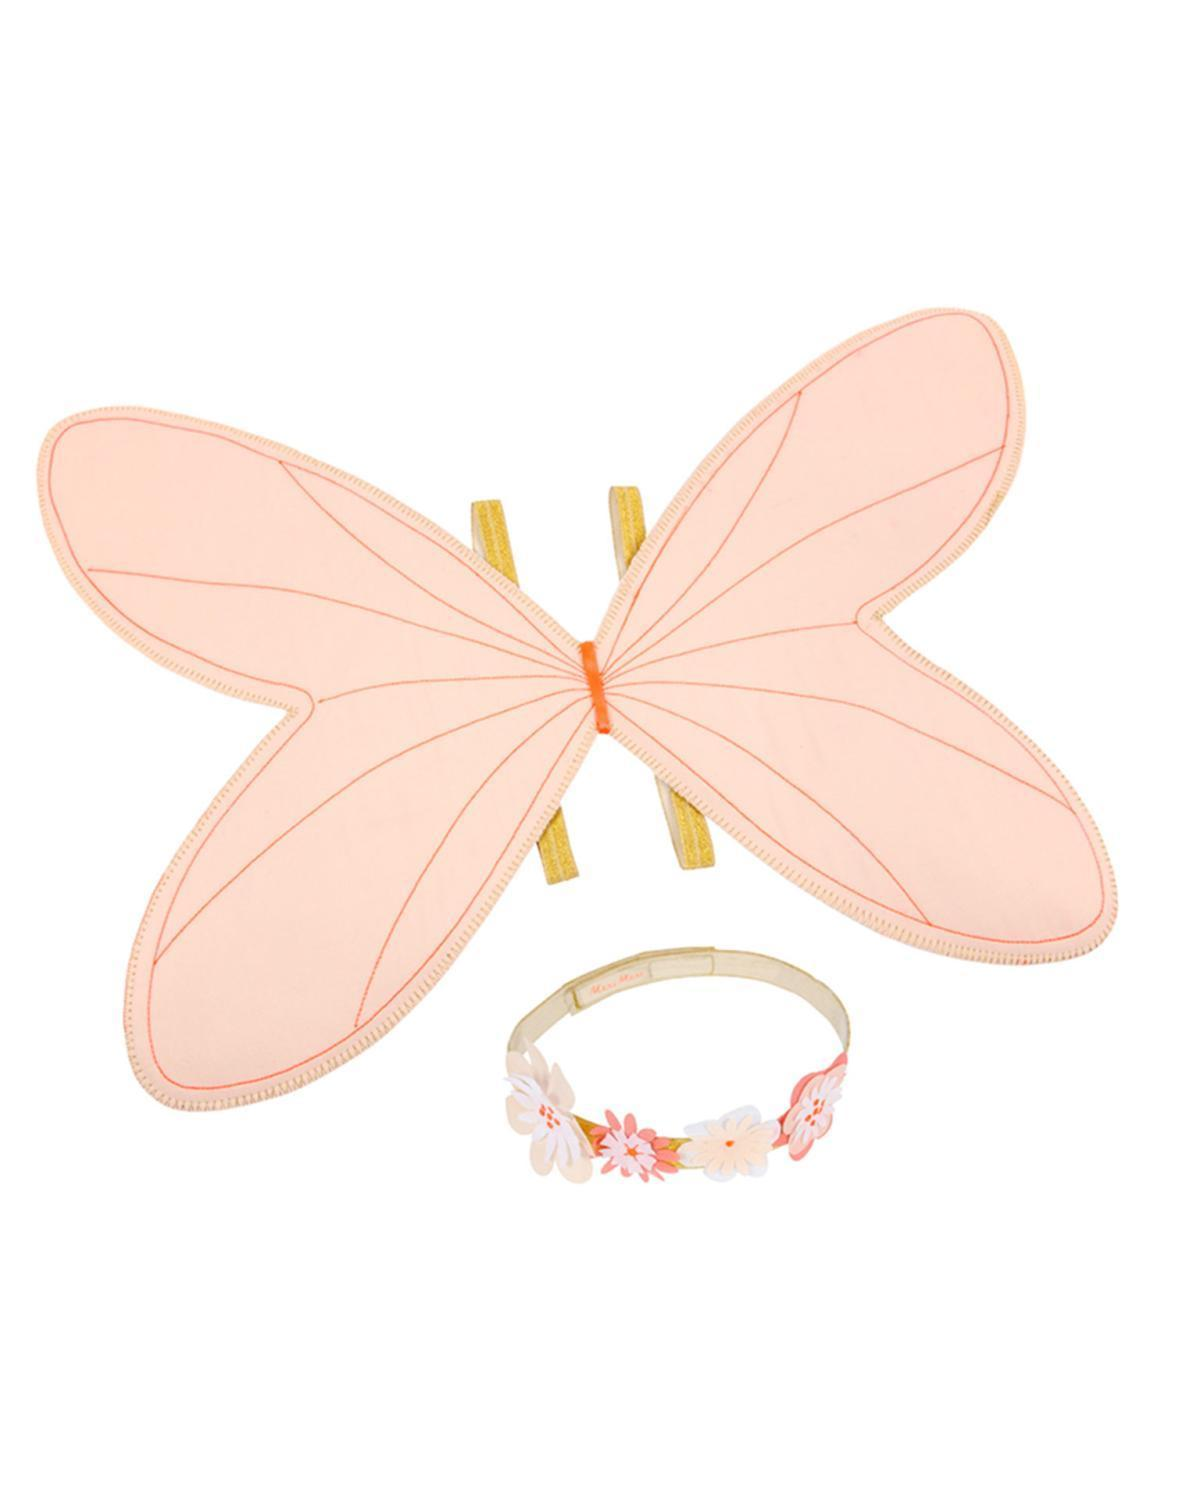 Little meri meri play fairy wings dress-up kit